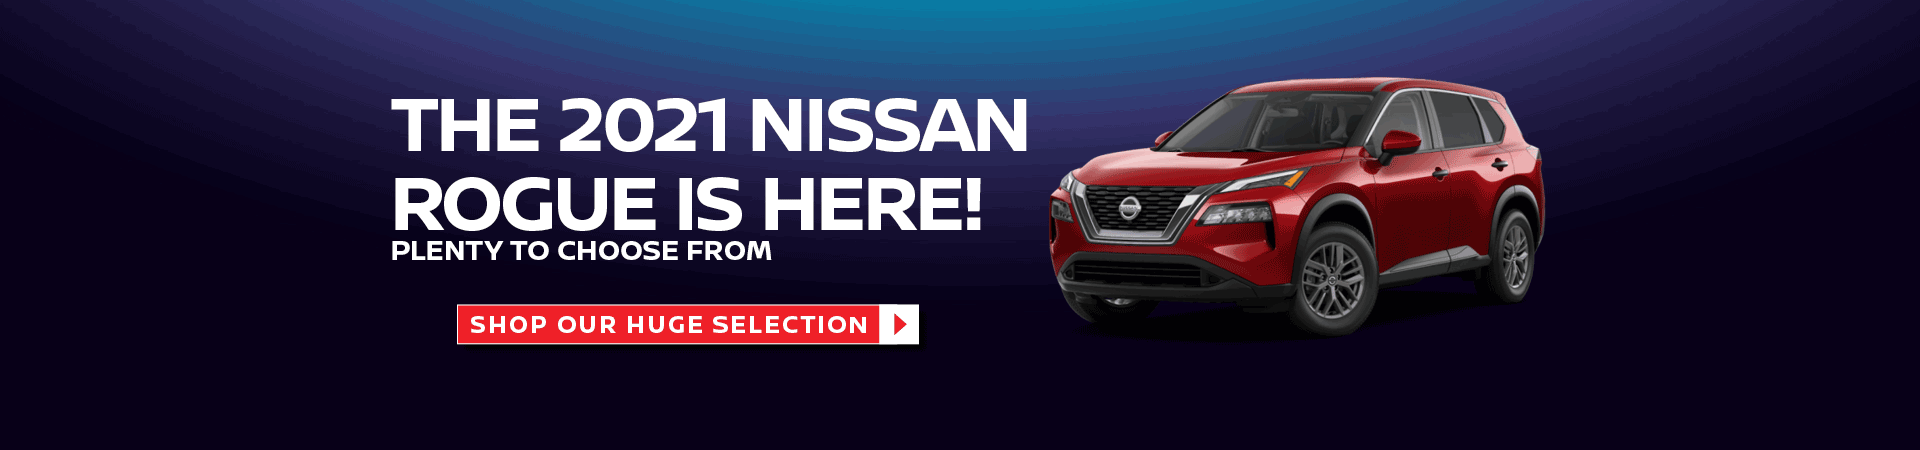 2021 Nissan Rogue In Stock